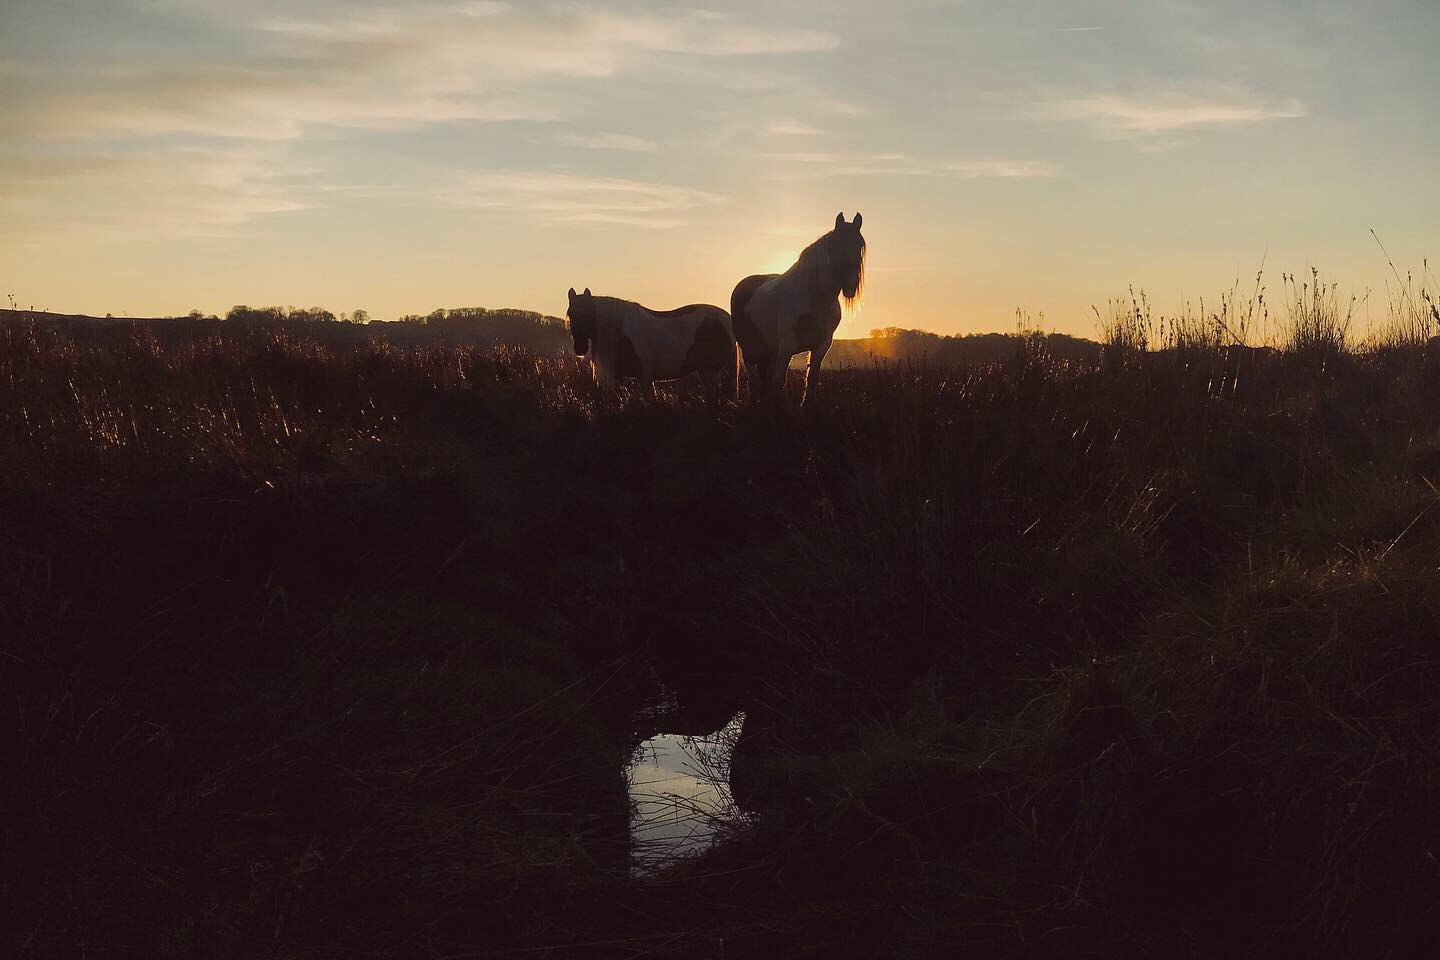 Wild horses on the Gower marshes in South Wales - by Ben Holbrook from DriftwoodJournals.com2